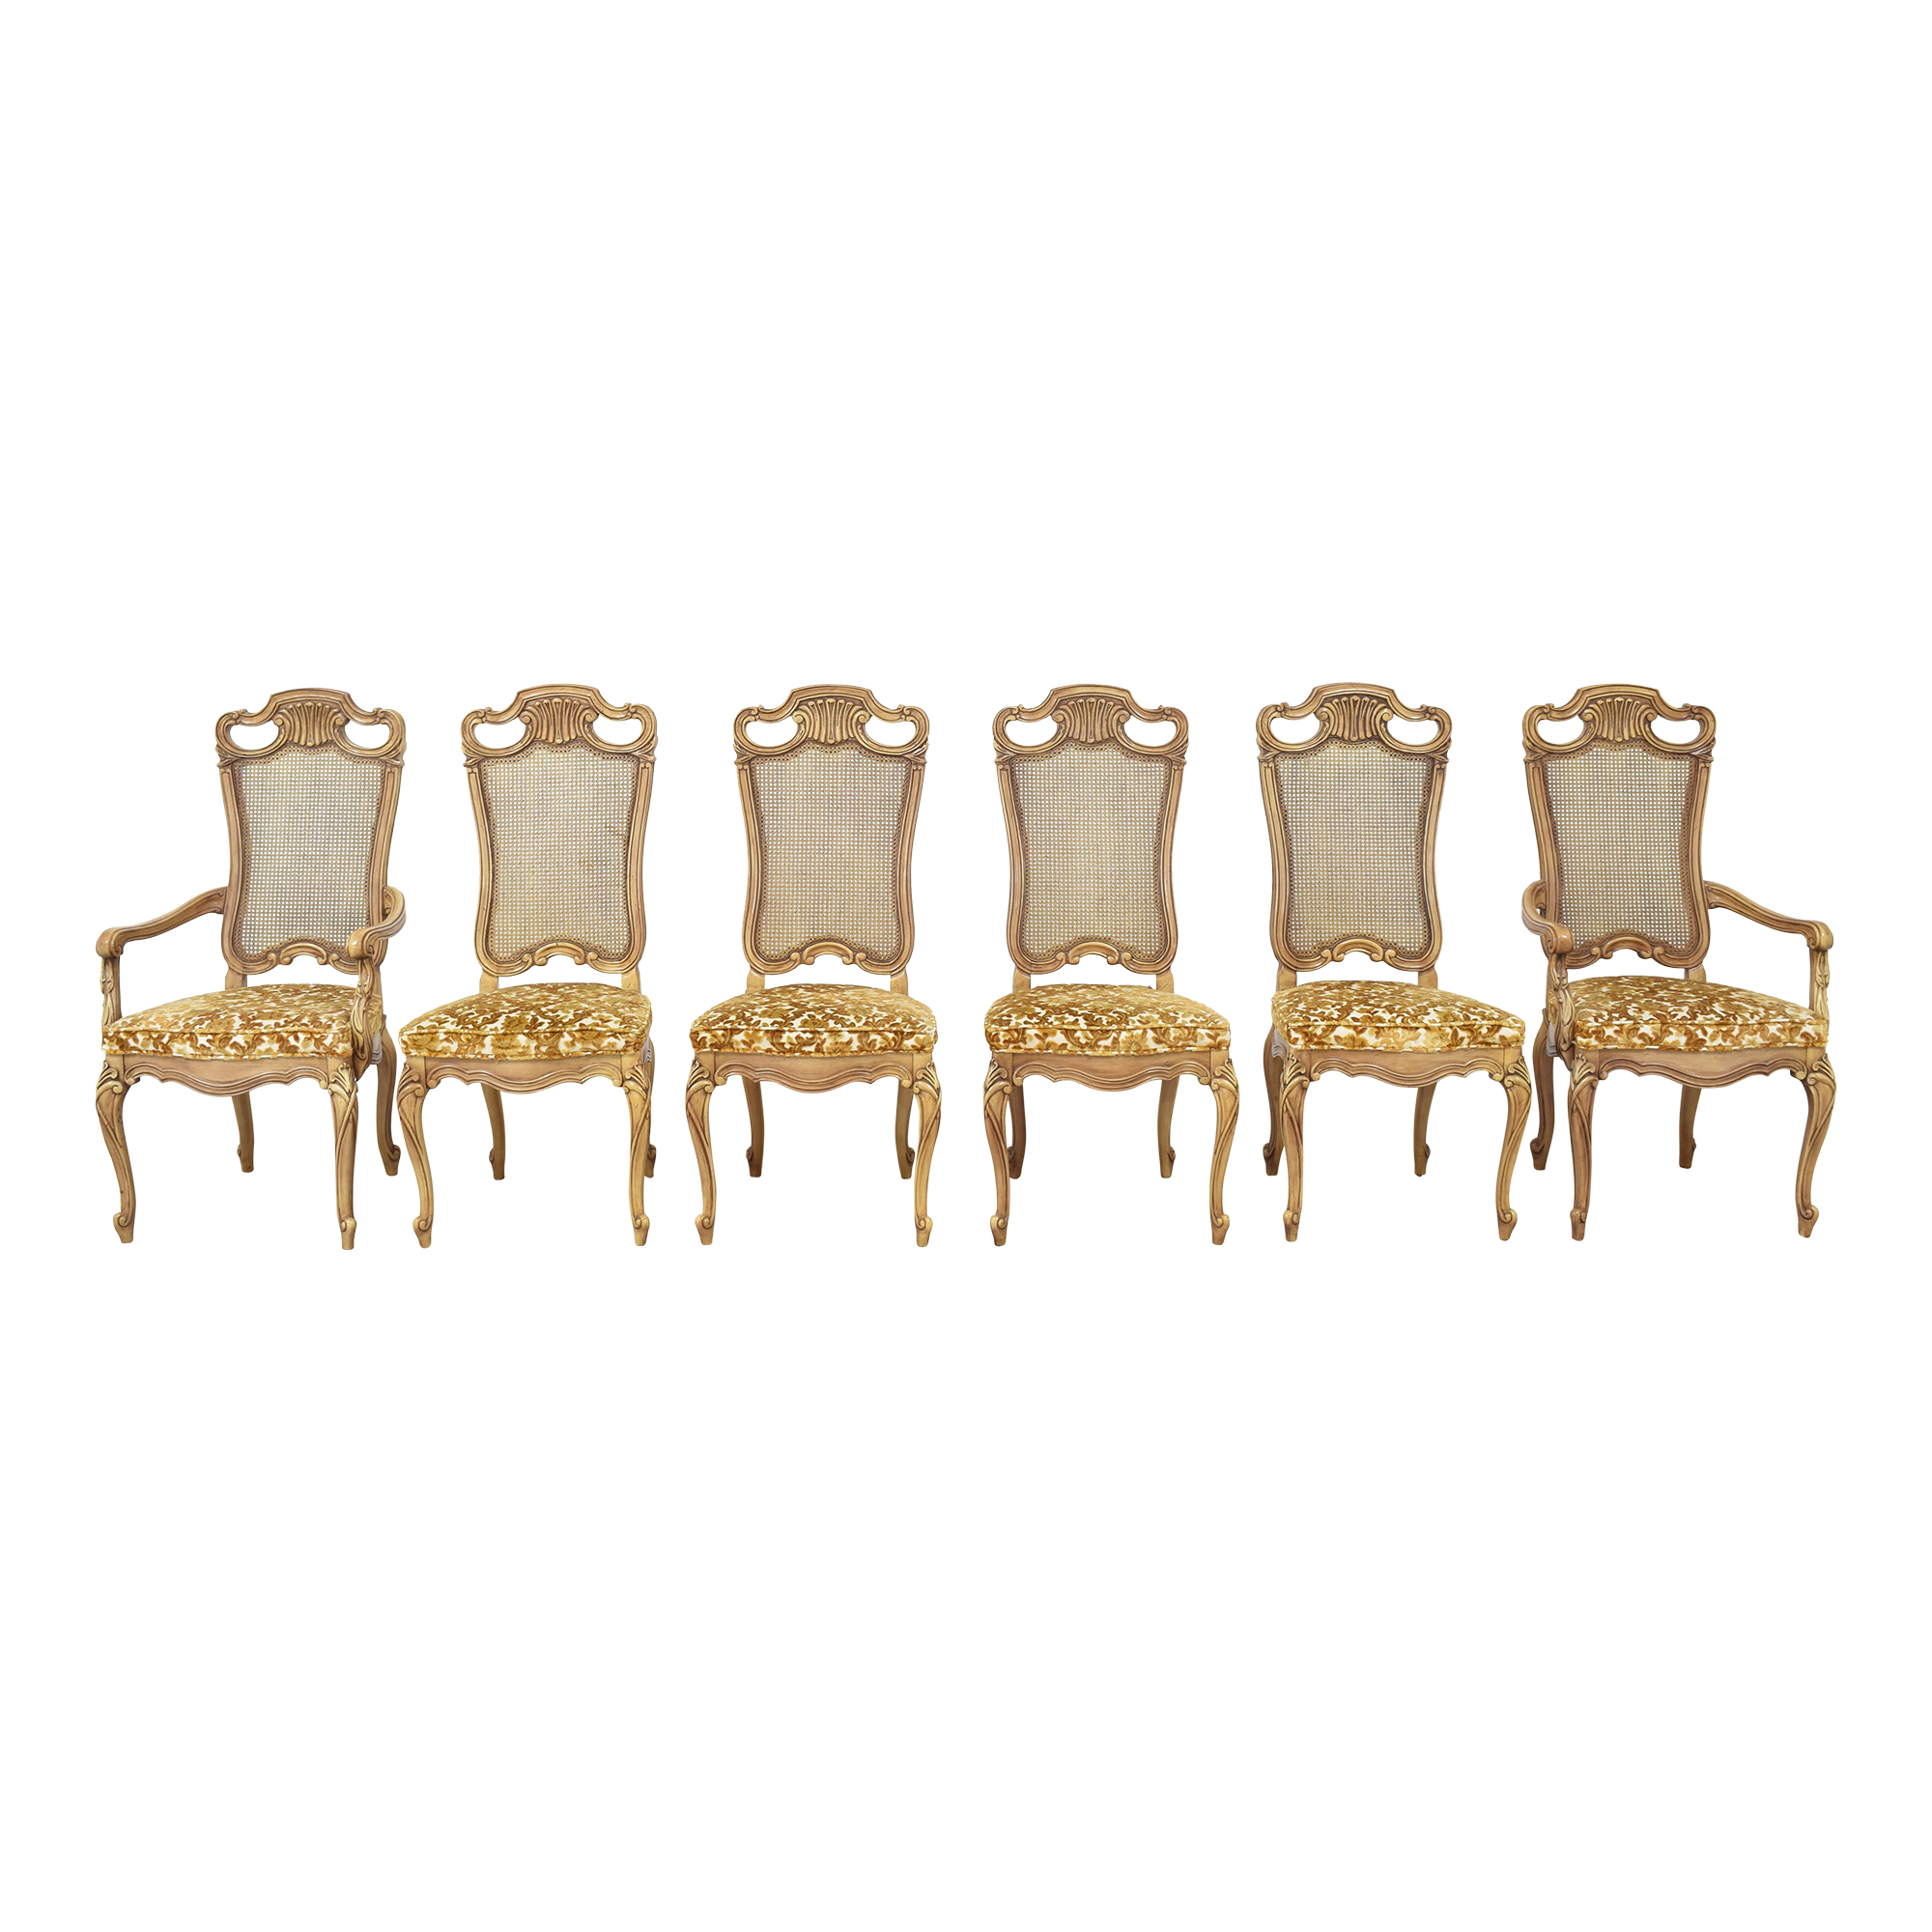 Union Furniture Company Union Furniture French Provincial Dining Chairs ma